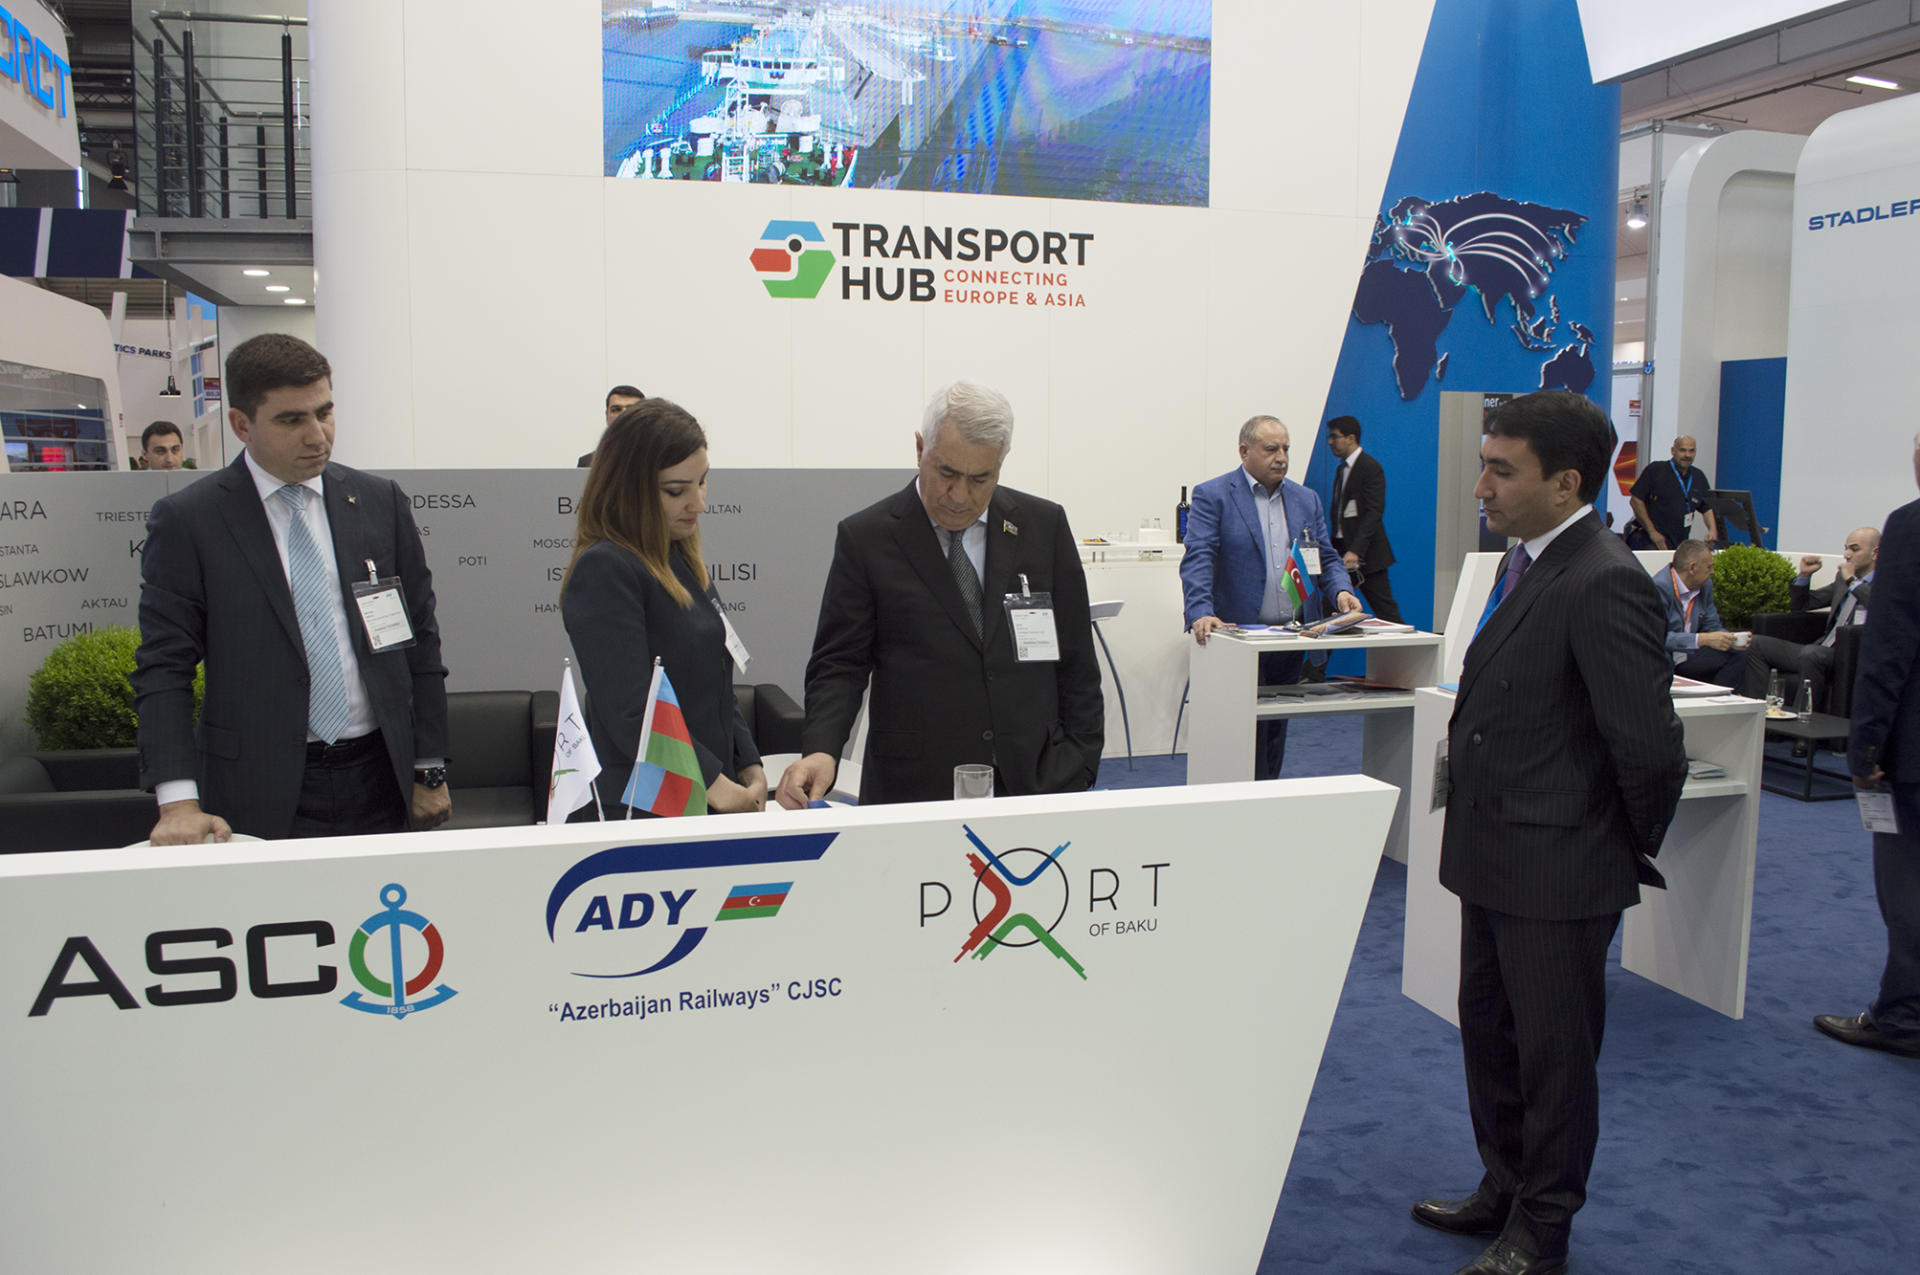 Azerbaijan presented at biggest transport exhibition in Europe for first time (PHOTO)